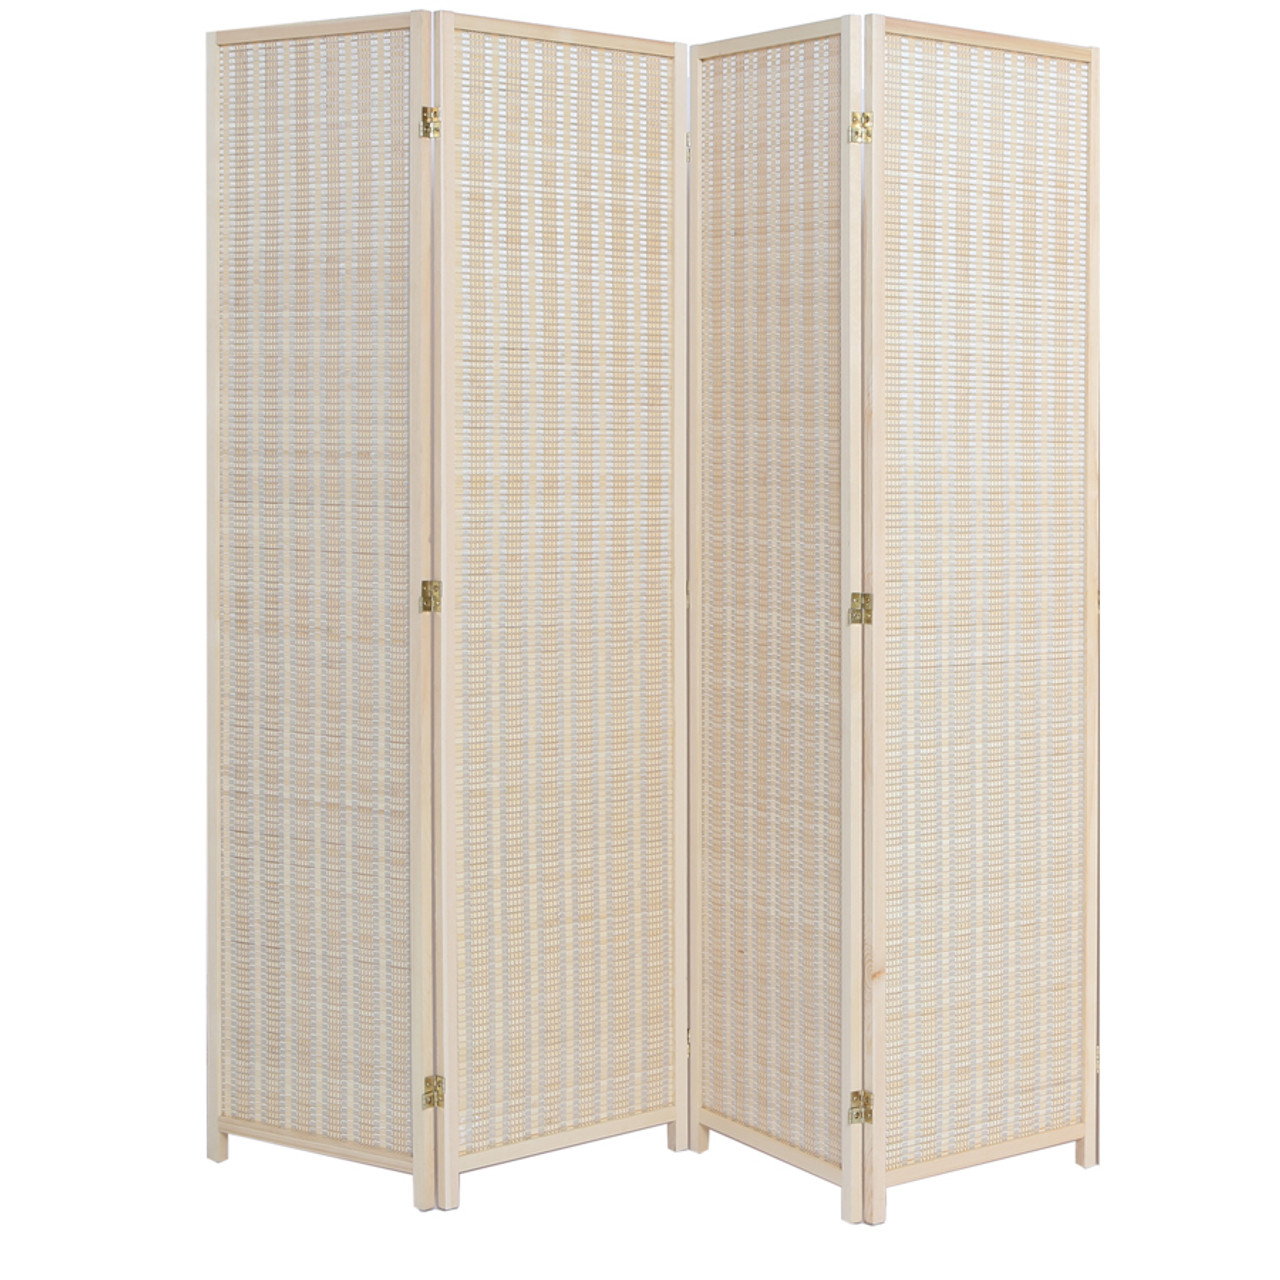 4 Panel Natural, Brown, or Black Color Wood and Bamboo Weave Room Divider